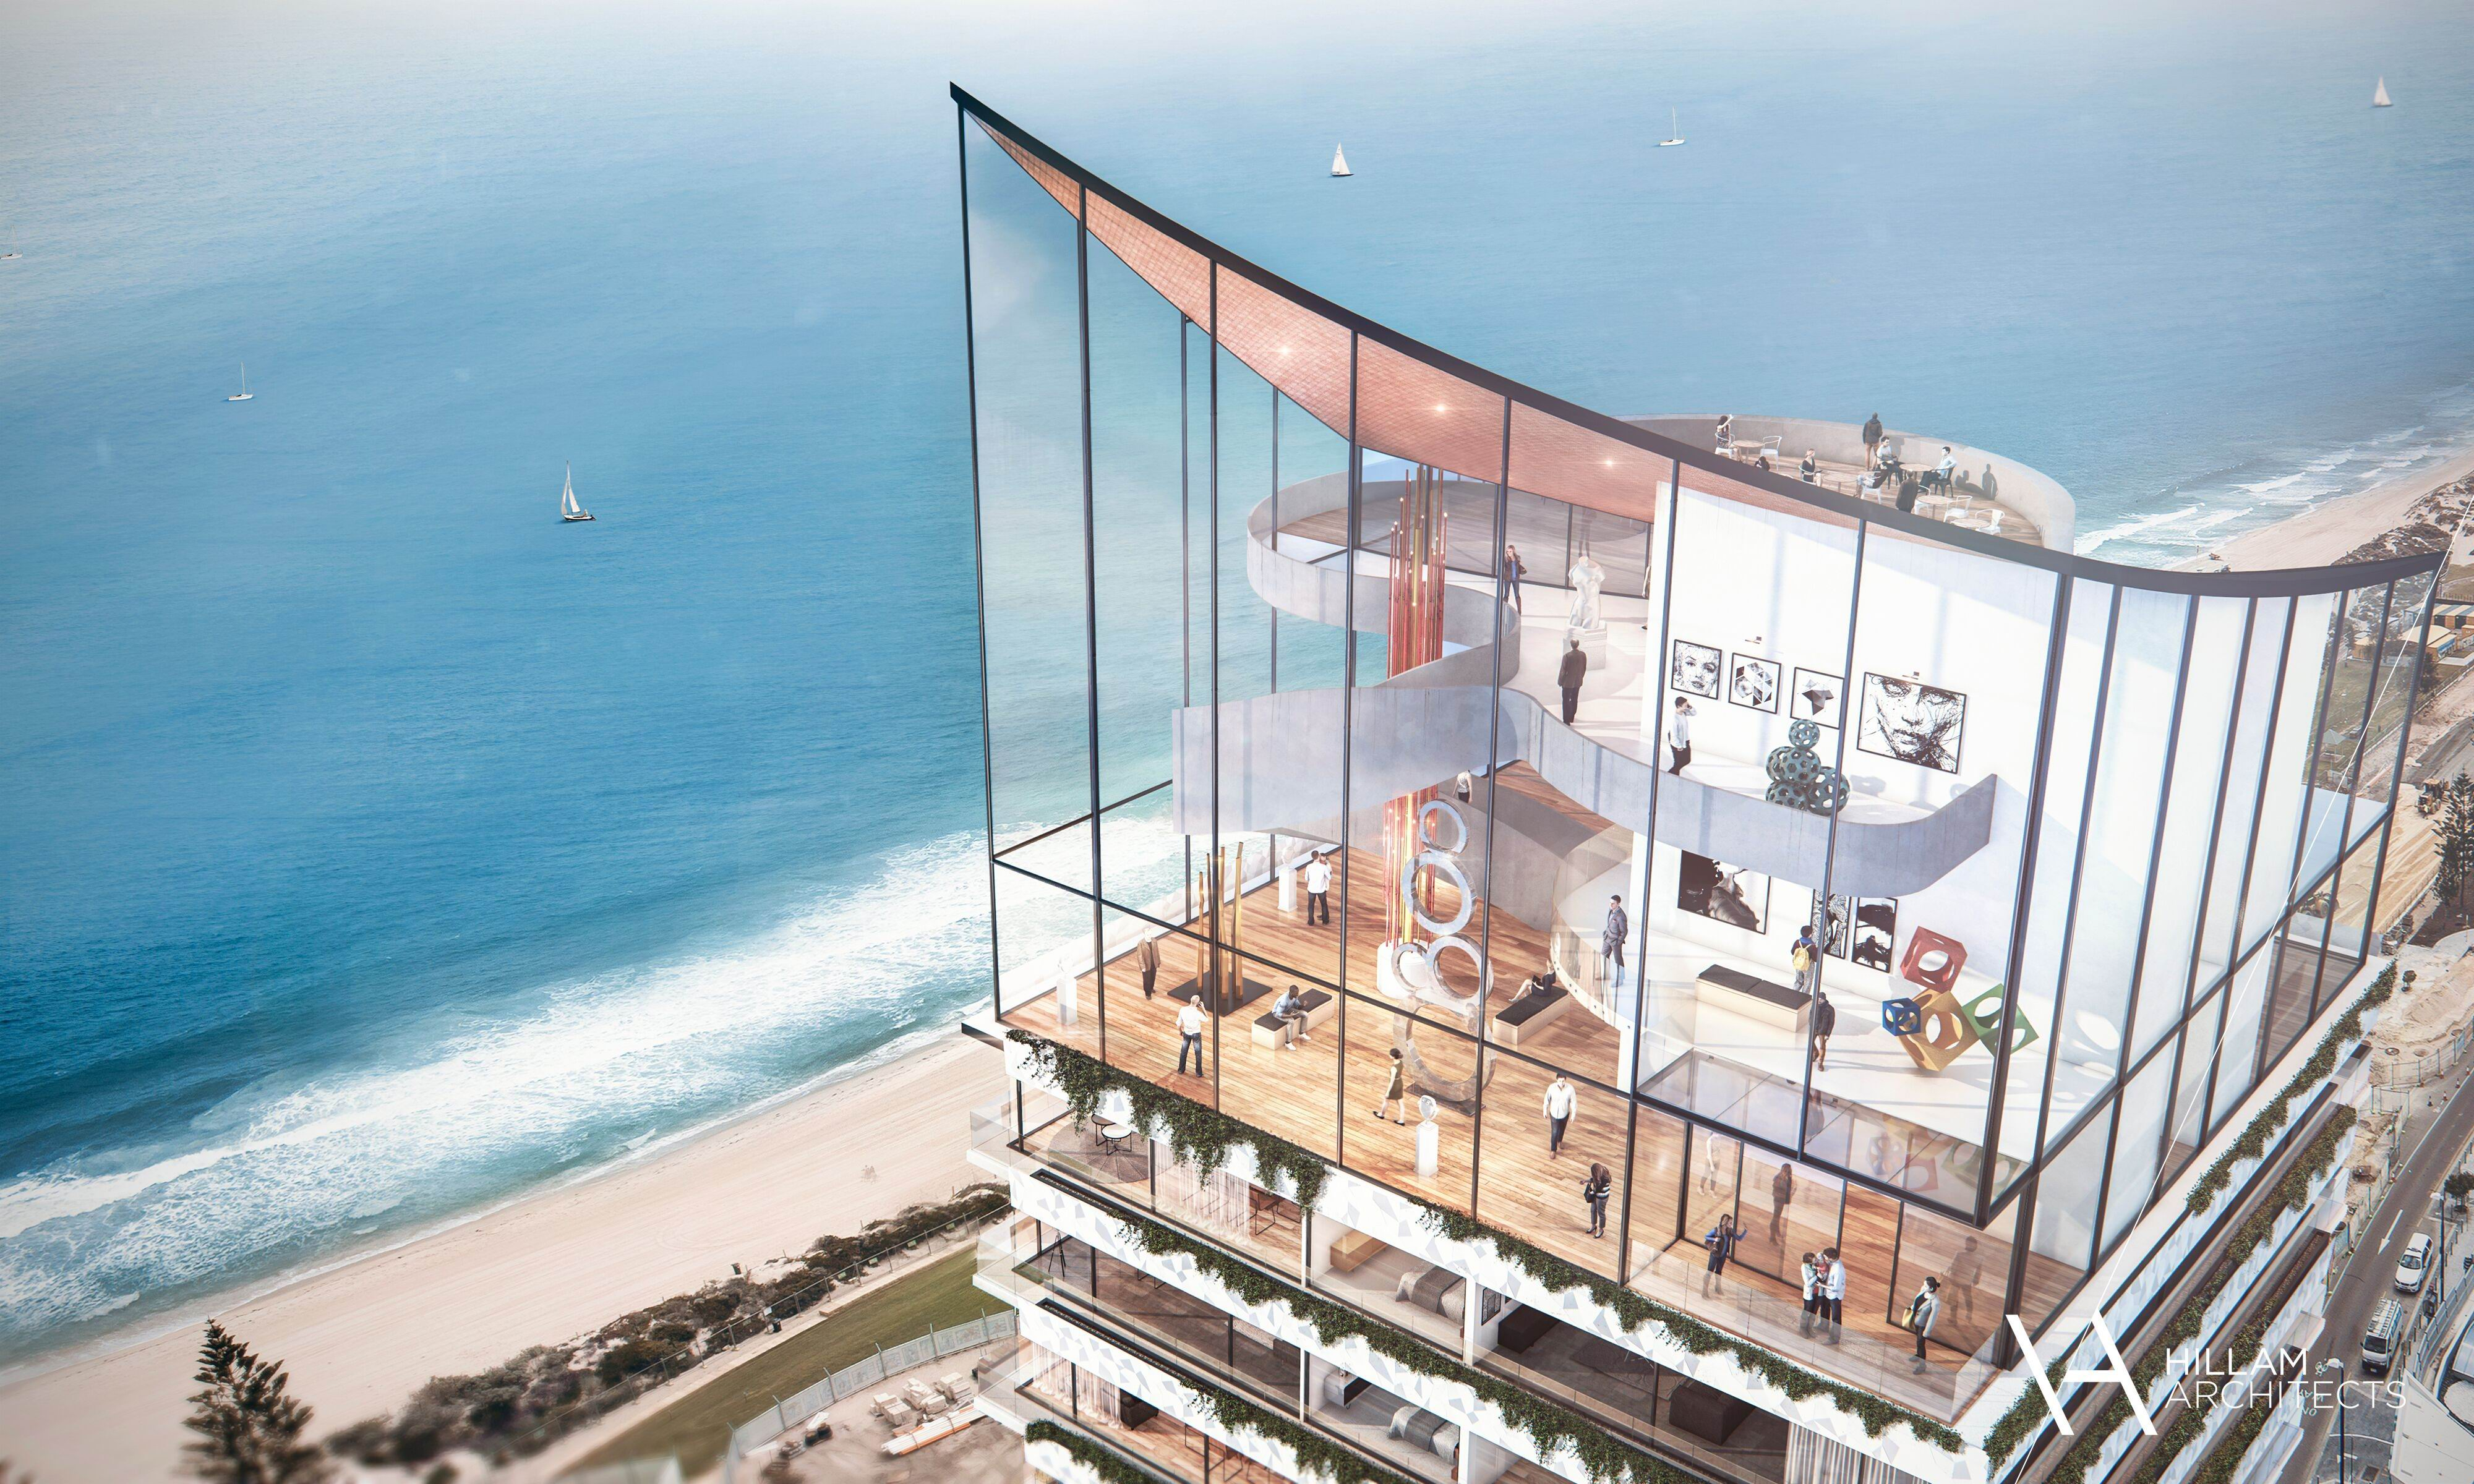 Artist's impression of the proposed 40-storey hotel at Scarborough foreshore.